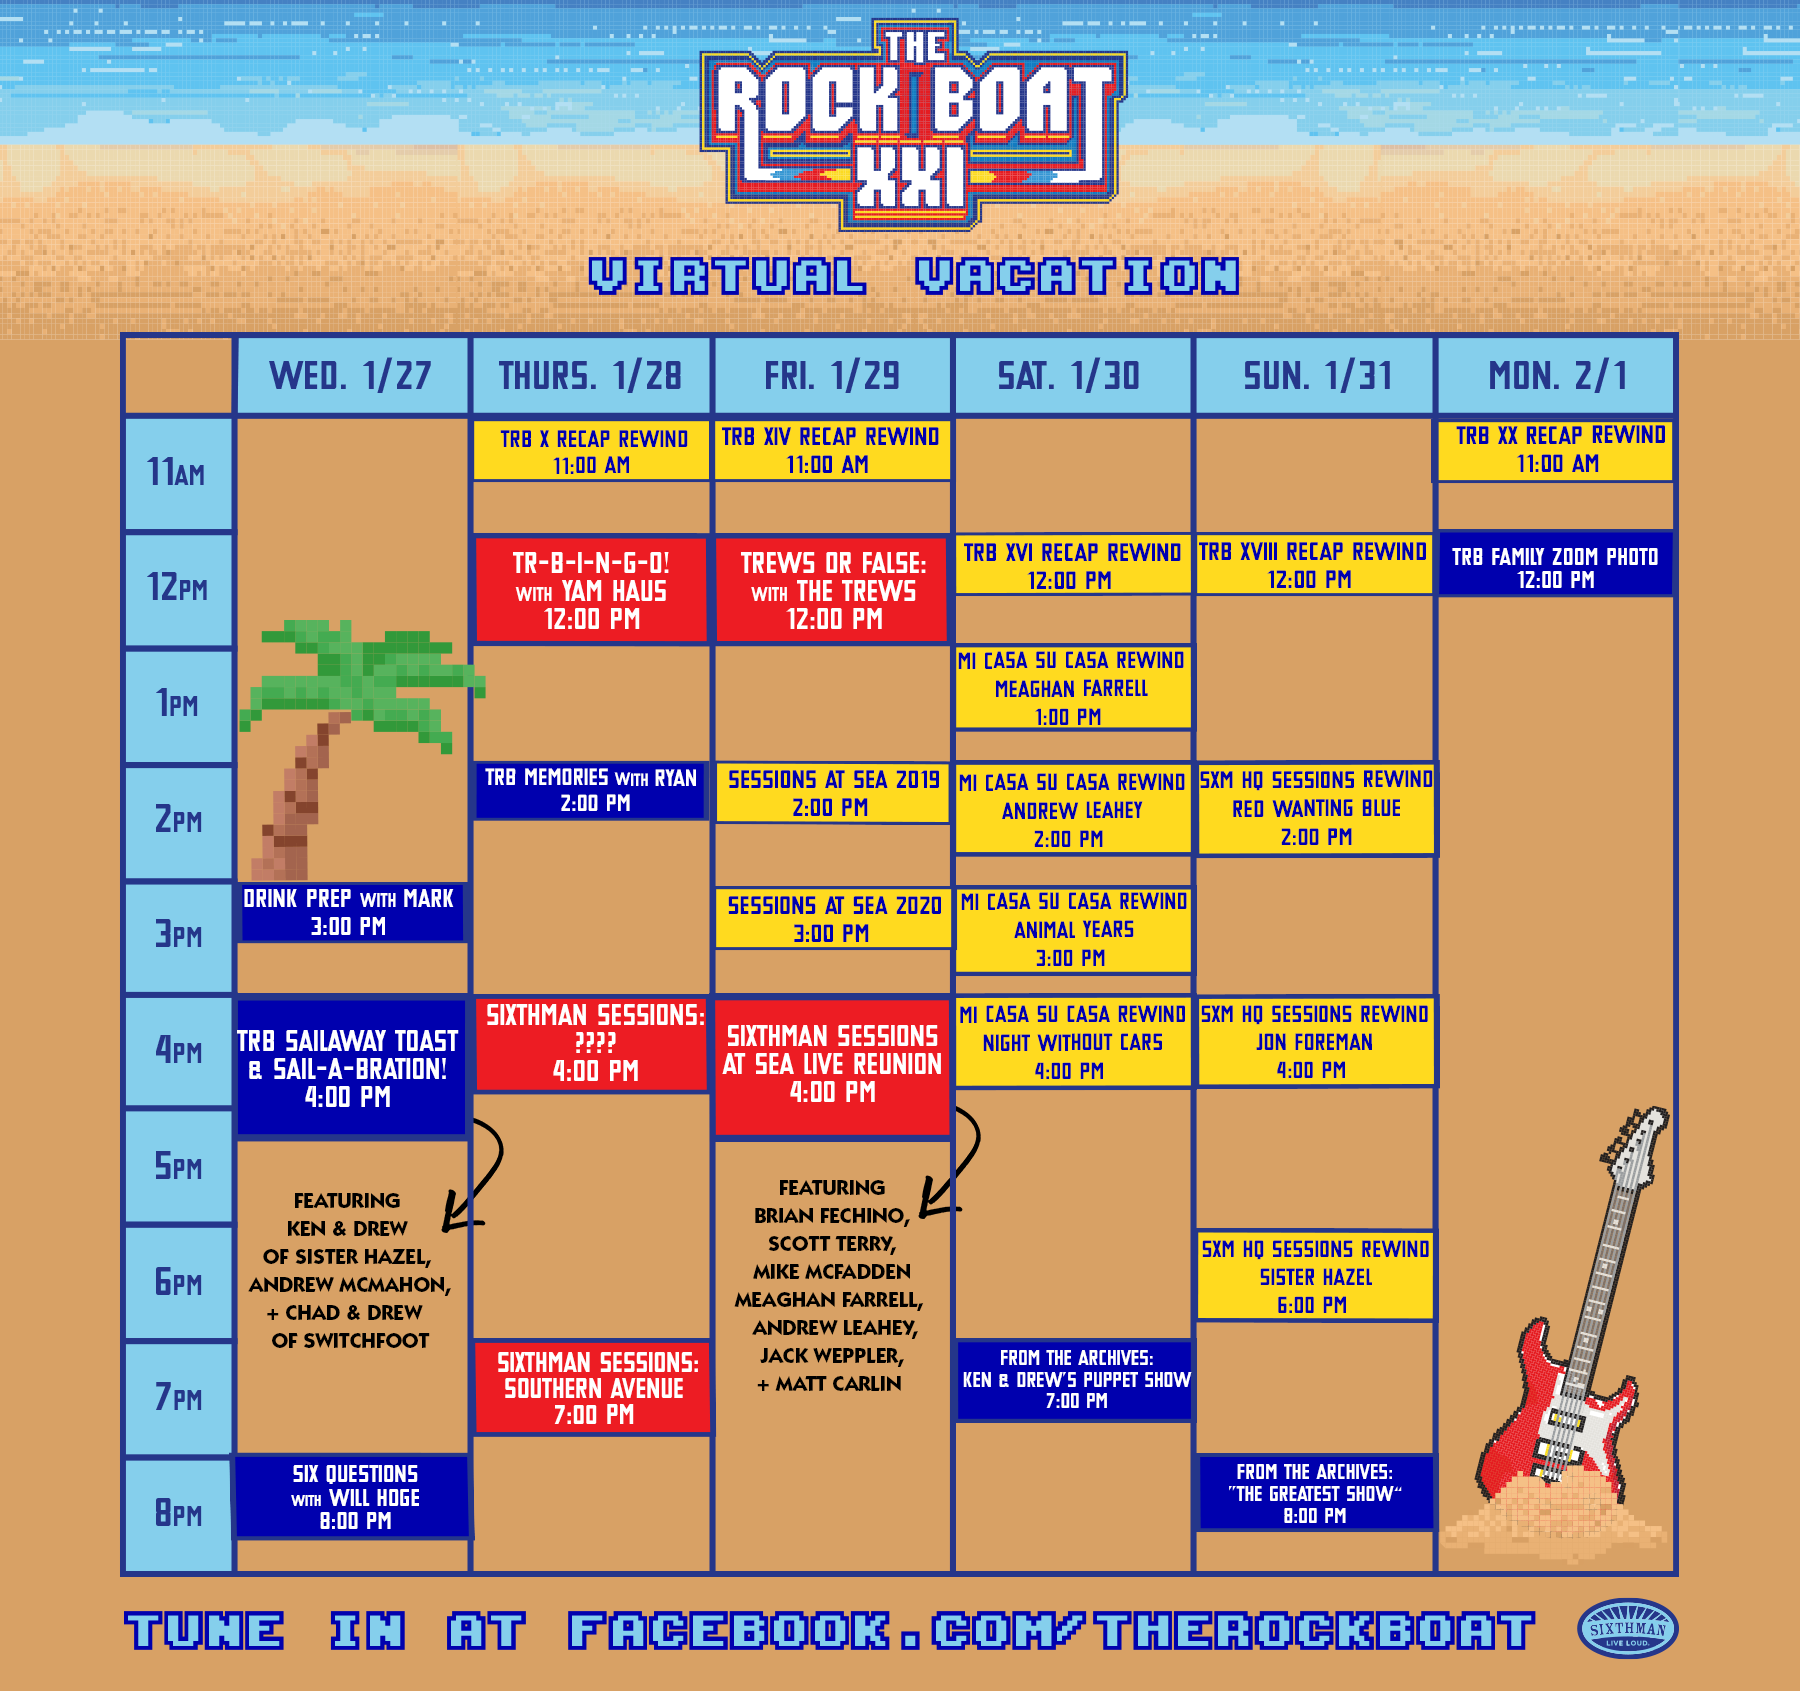 Virtual vacation schedule